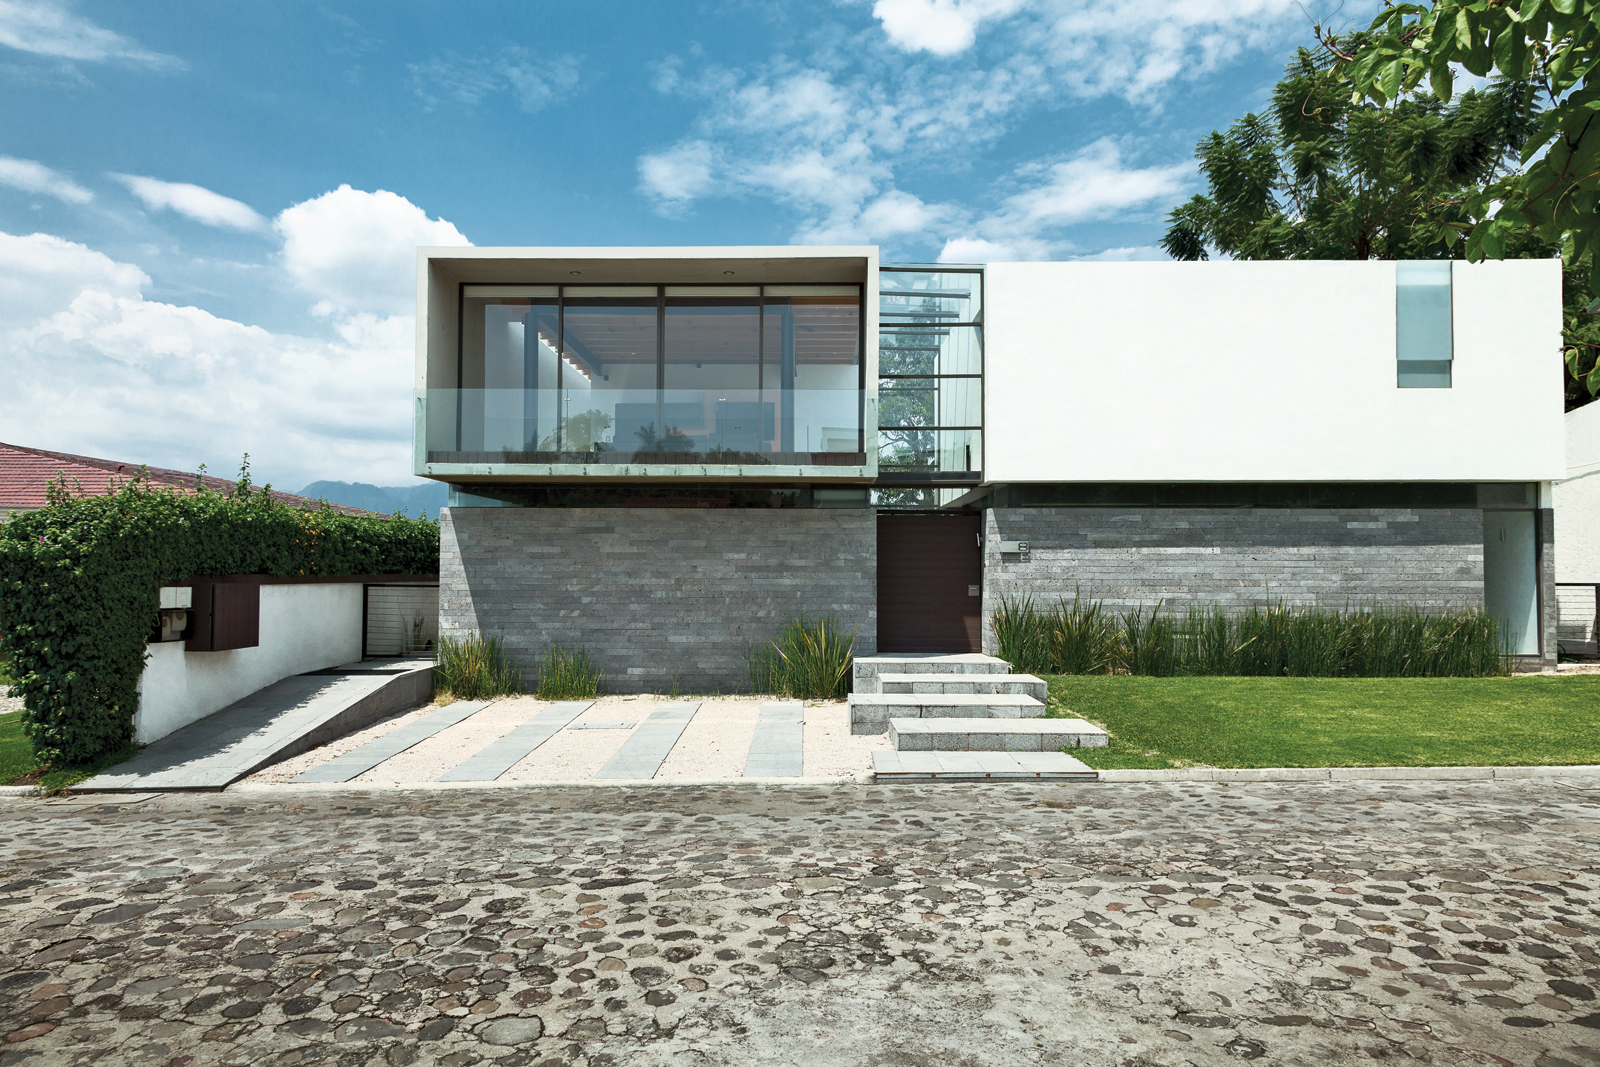 Modern small box home in Mexico